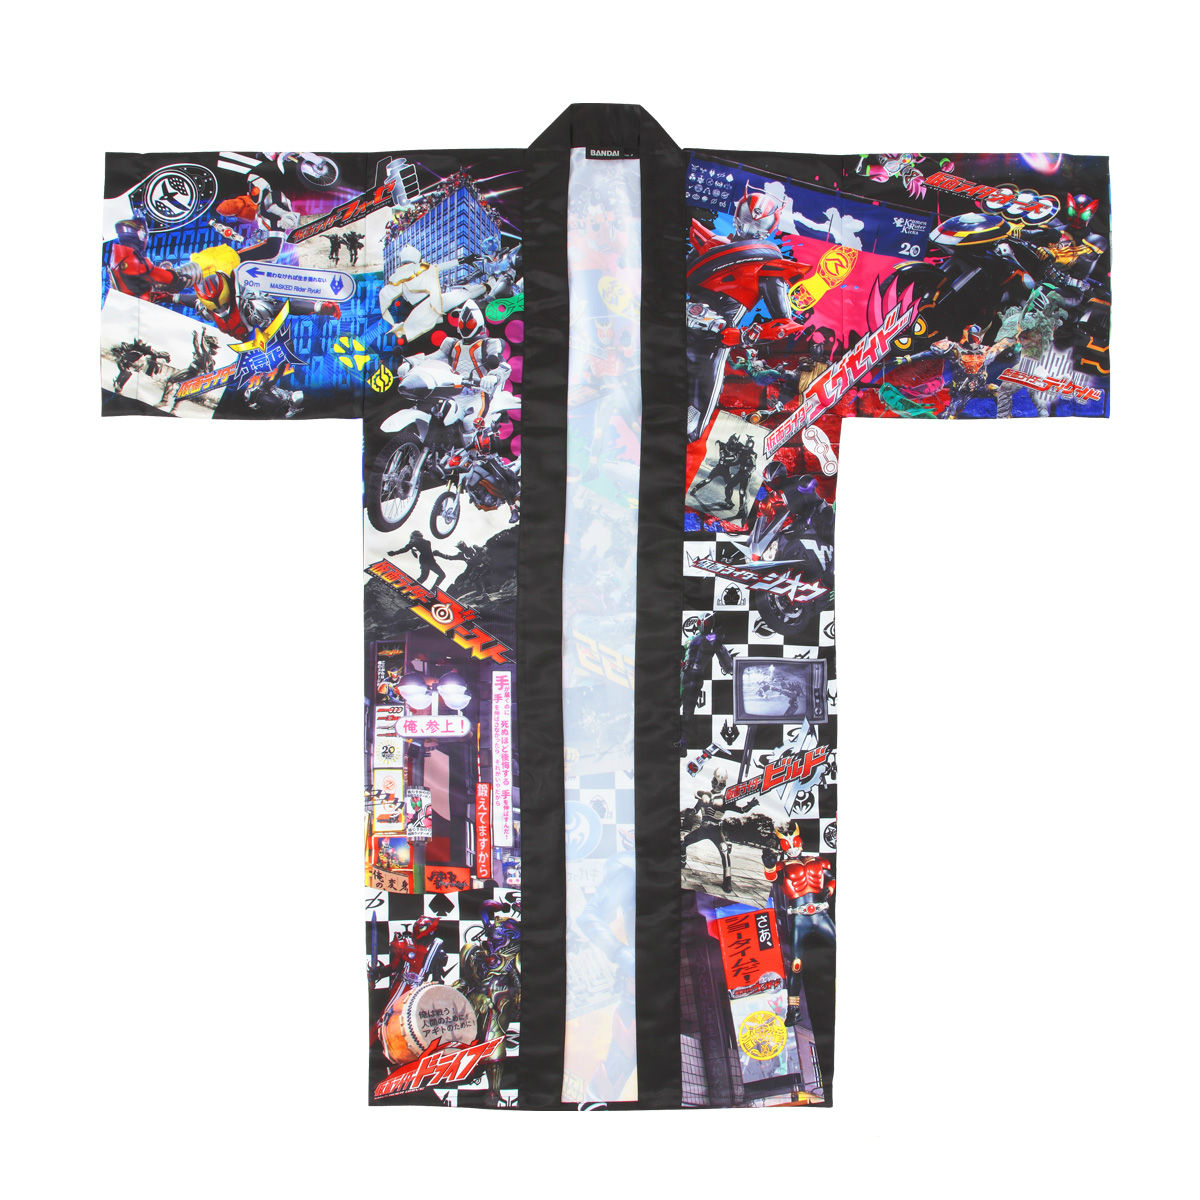 Heisei Kamen Rider 20th Anniversary Traditional Japanese Straight-Sleeved Coat.